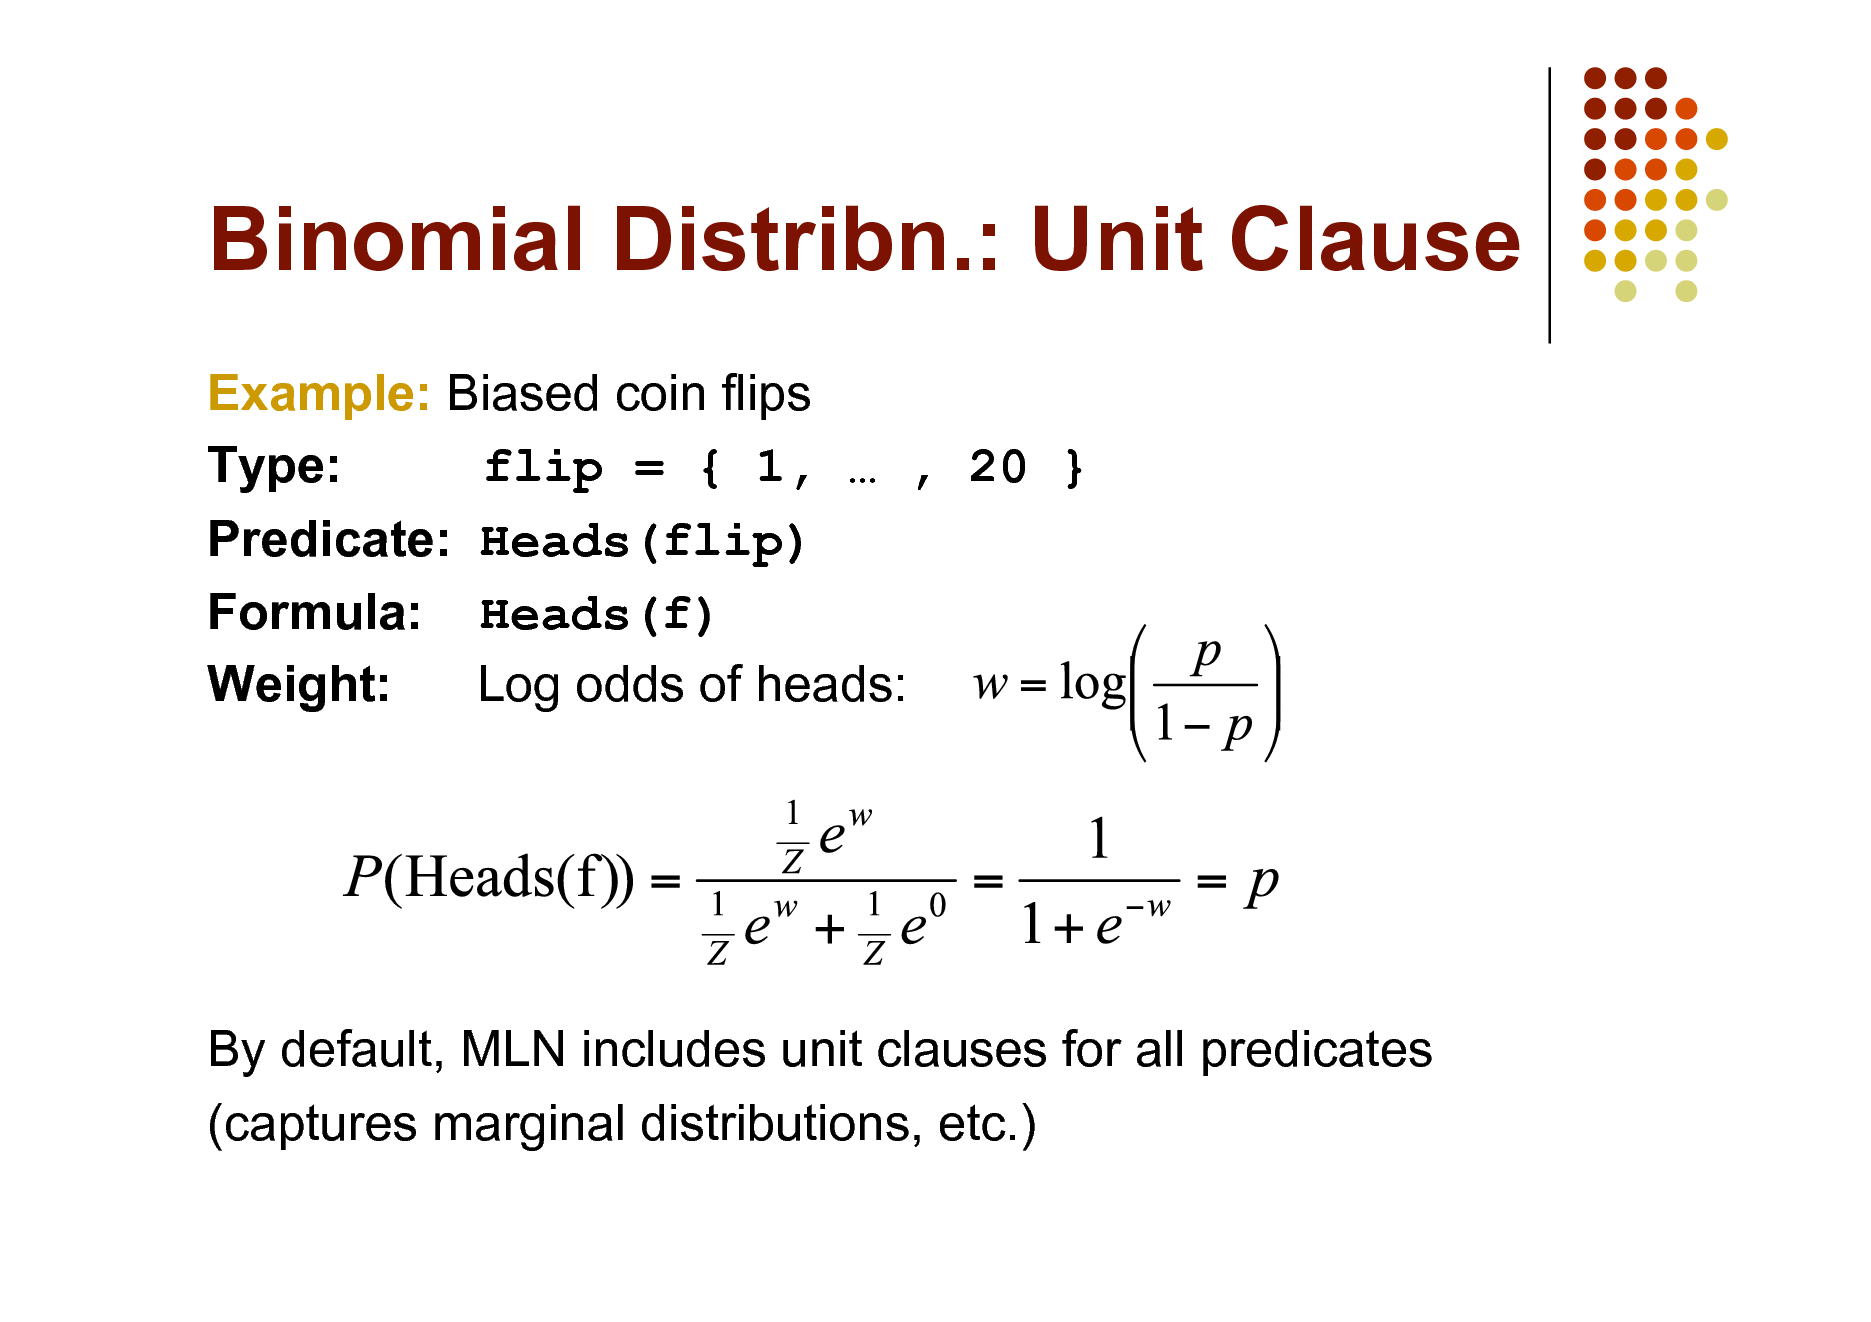 Slide: Binomial Distribn.: Unit Clause Example: Biased coin flips Type: flip = { 1,  , 20 } Predicate: Heads(flip) Formula: Heads(f) Weight: Log odds of heads:  By default, MLN includes unit clauses for all predicates (captures marginal distributions, etc.)